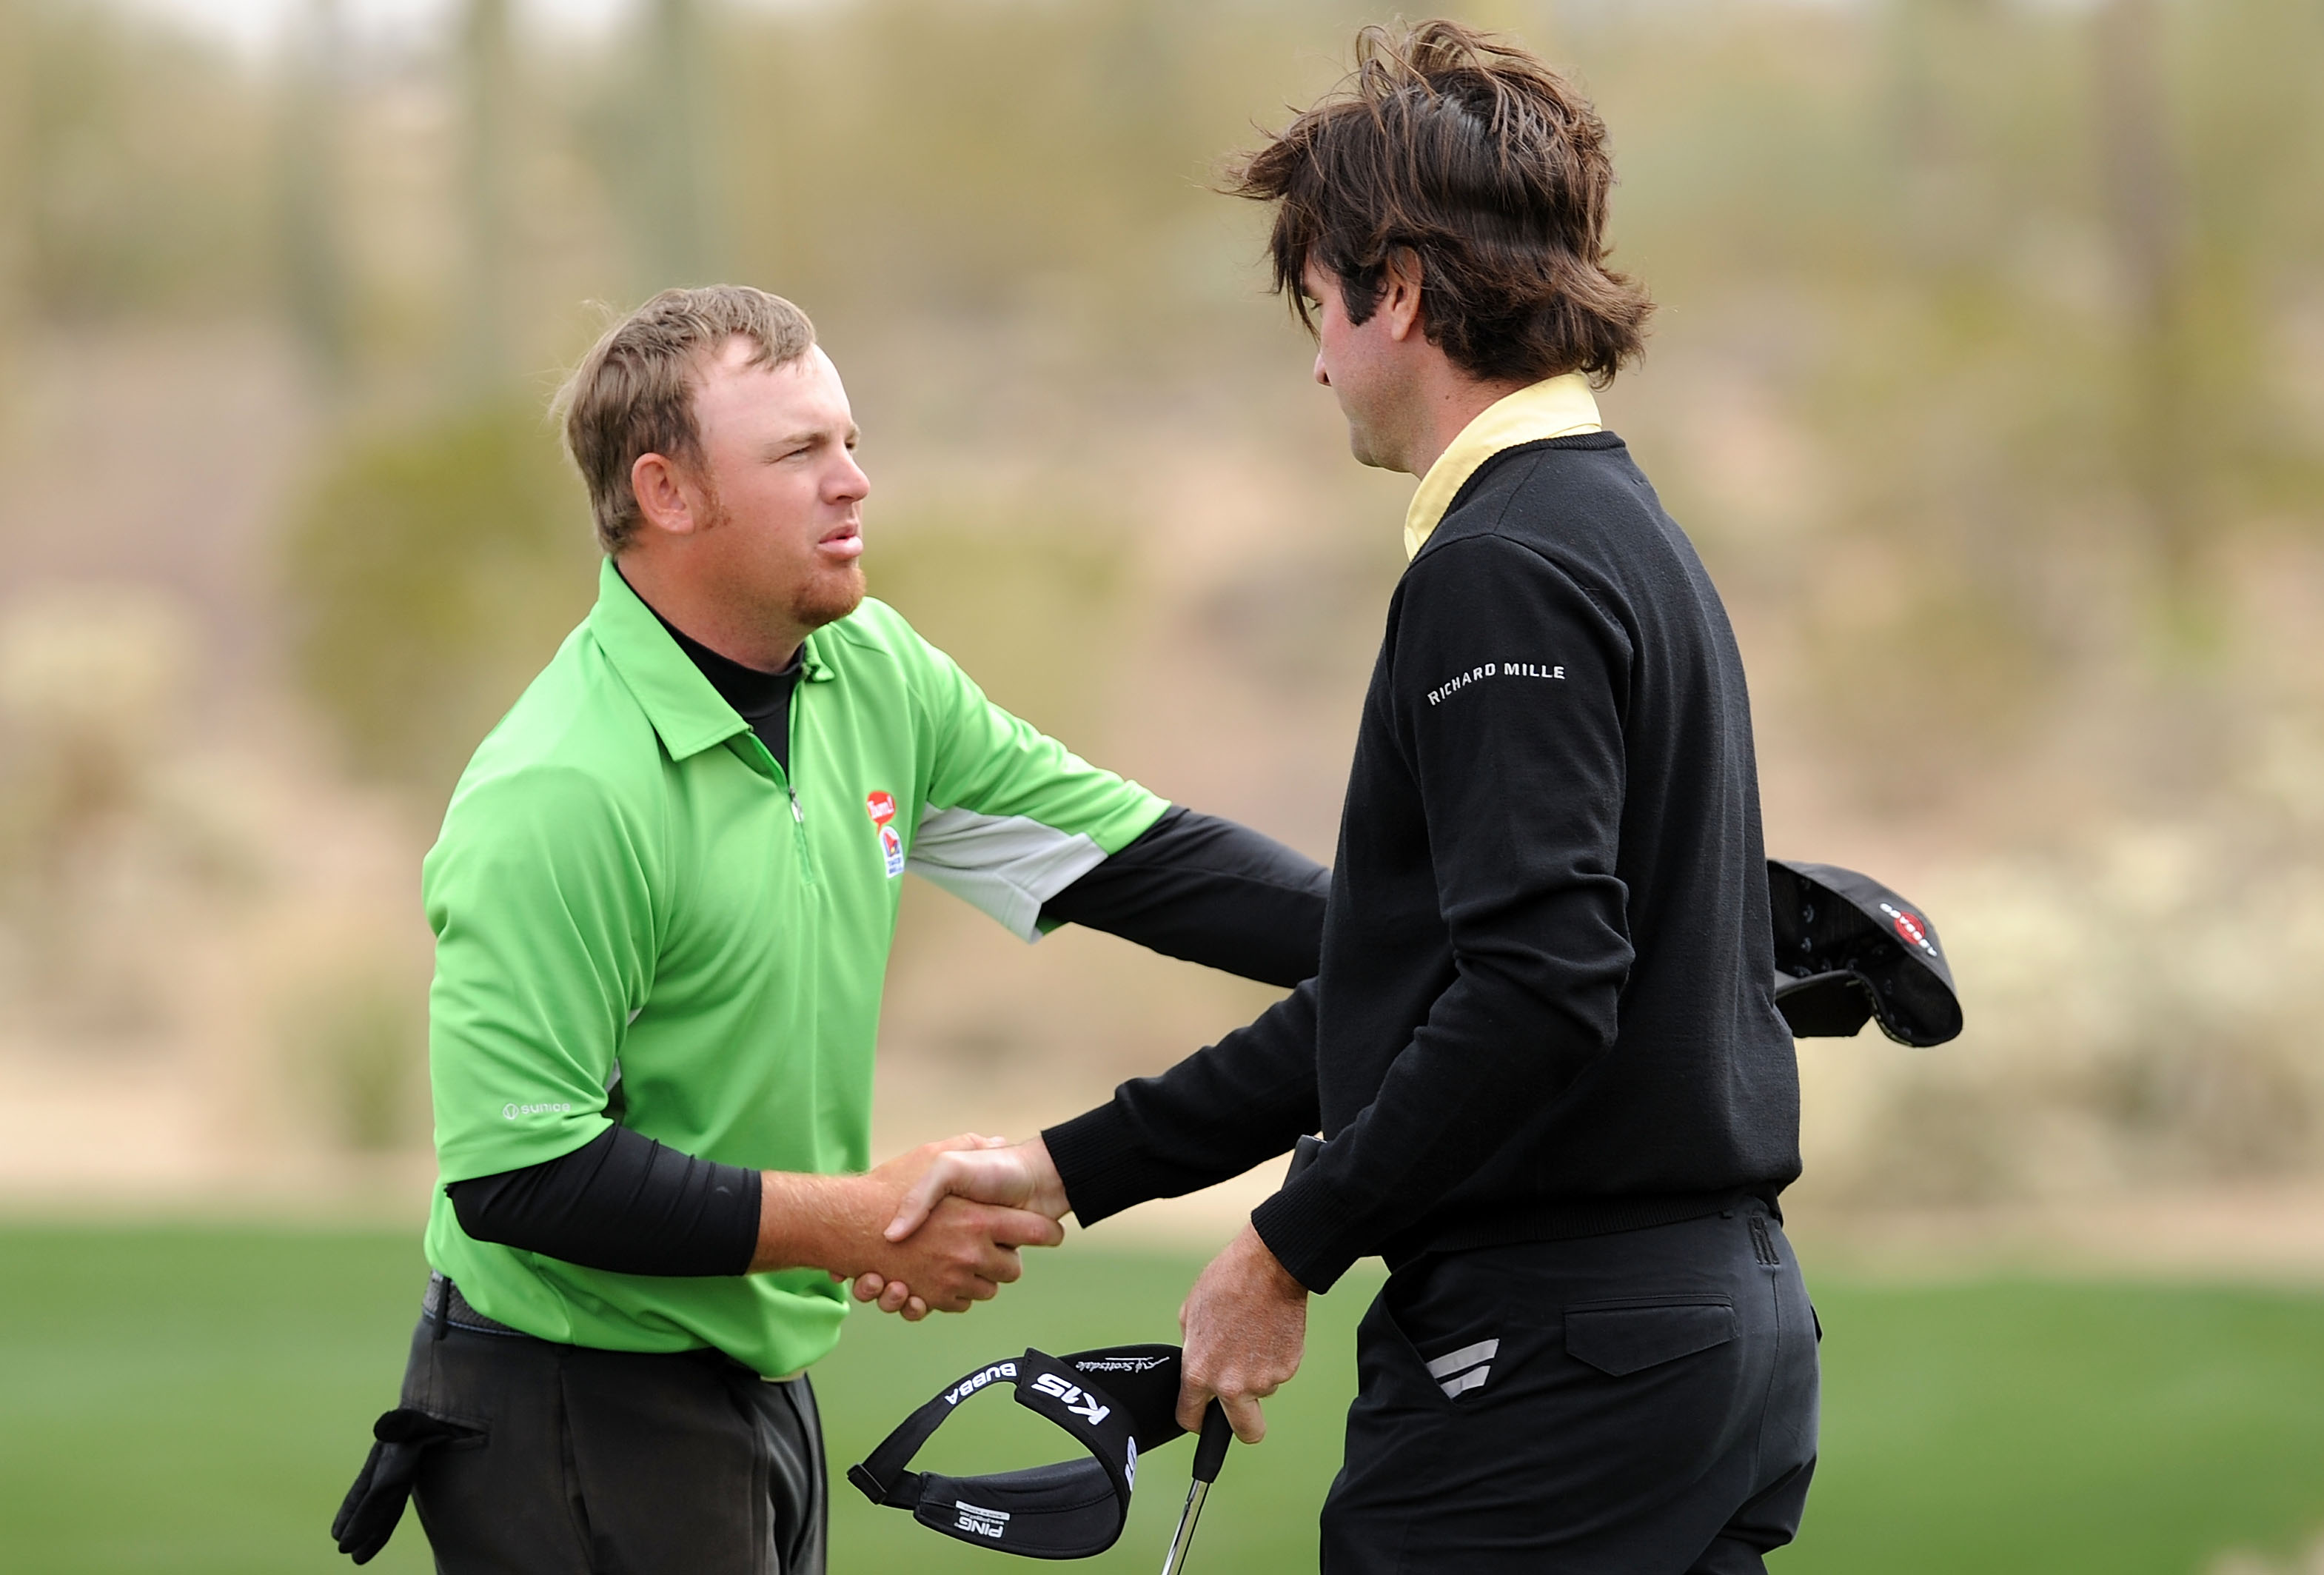 MARANA, AZ - FEBRUARY 26:  Bubba Watson shakes hands with J.B. Holmes on the first playoff hole during the quarterfinal round of the Accenture Match Play Championship at the Ritz-Carlton Golf Club on February 26, 2011 in Marana, Arizona.  (Photo by Stuart